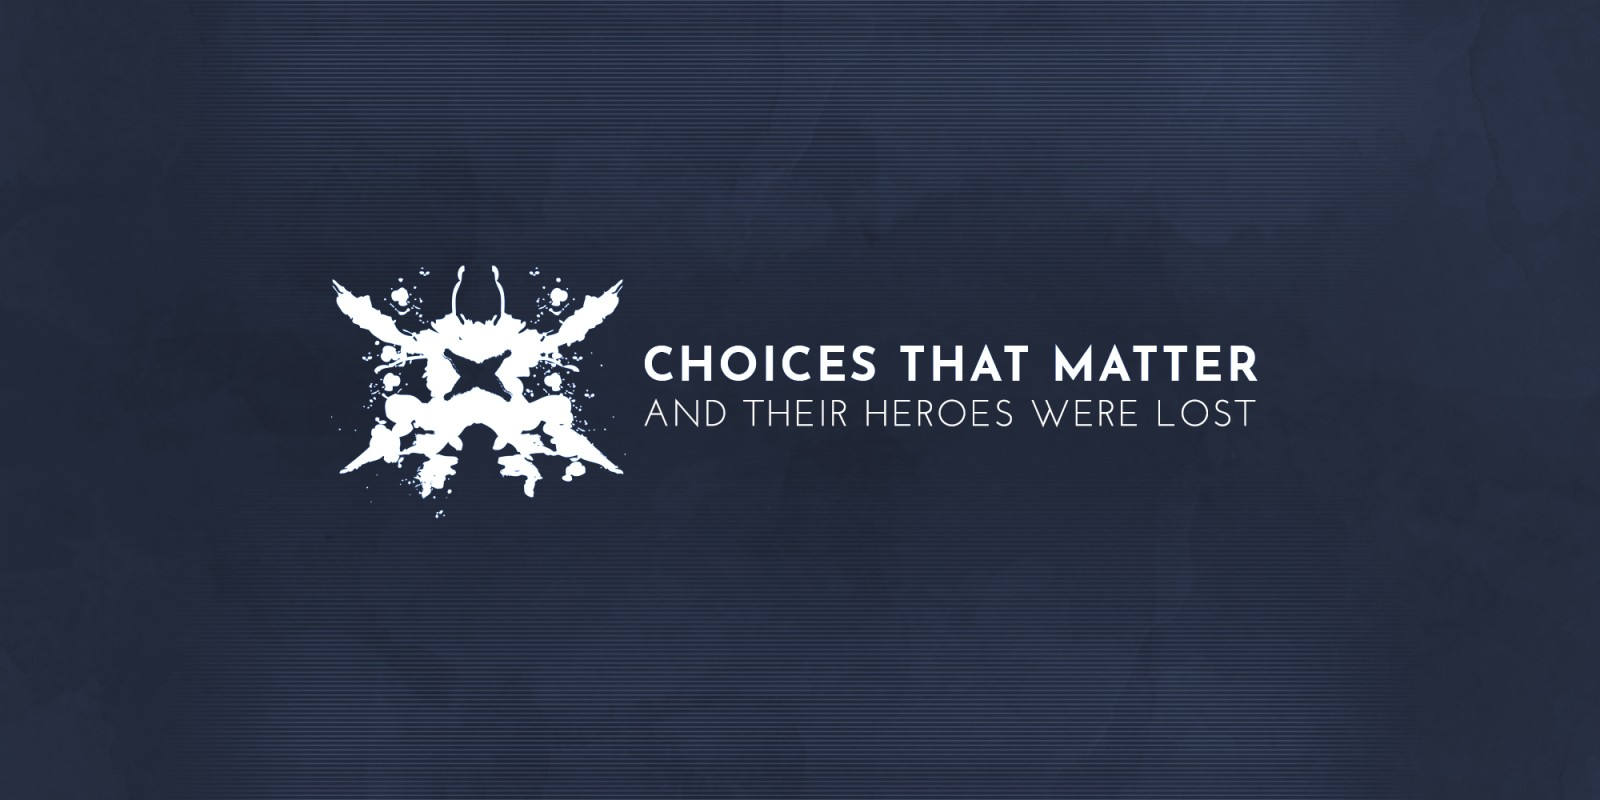 Choices That Matter: And Their Heroes Were Lost